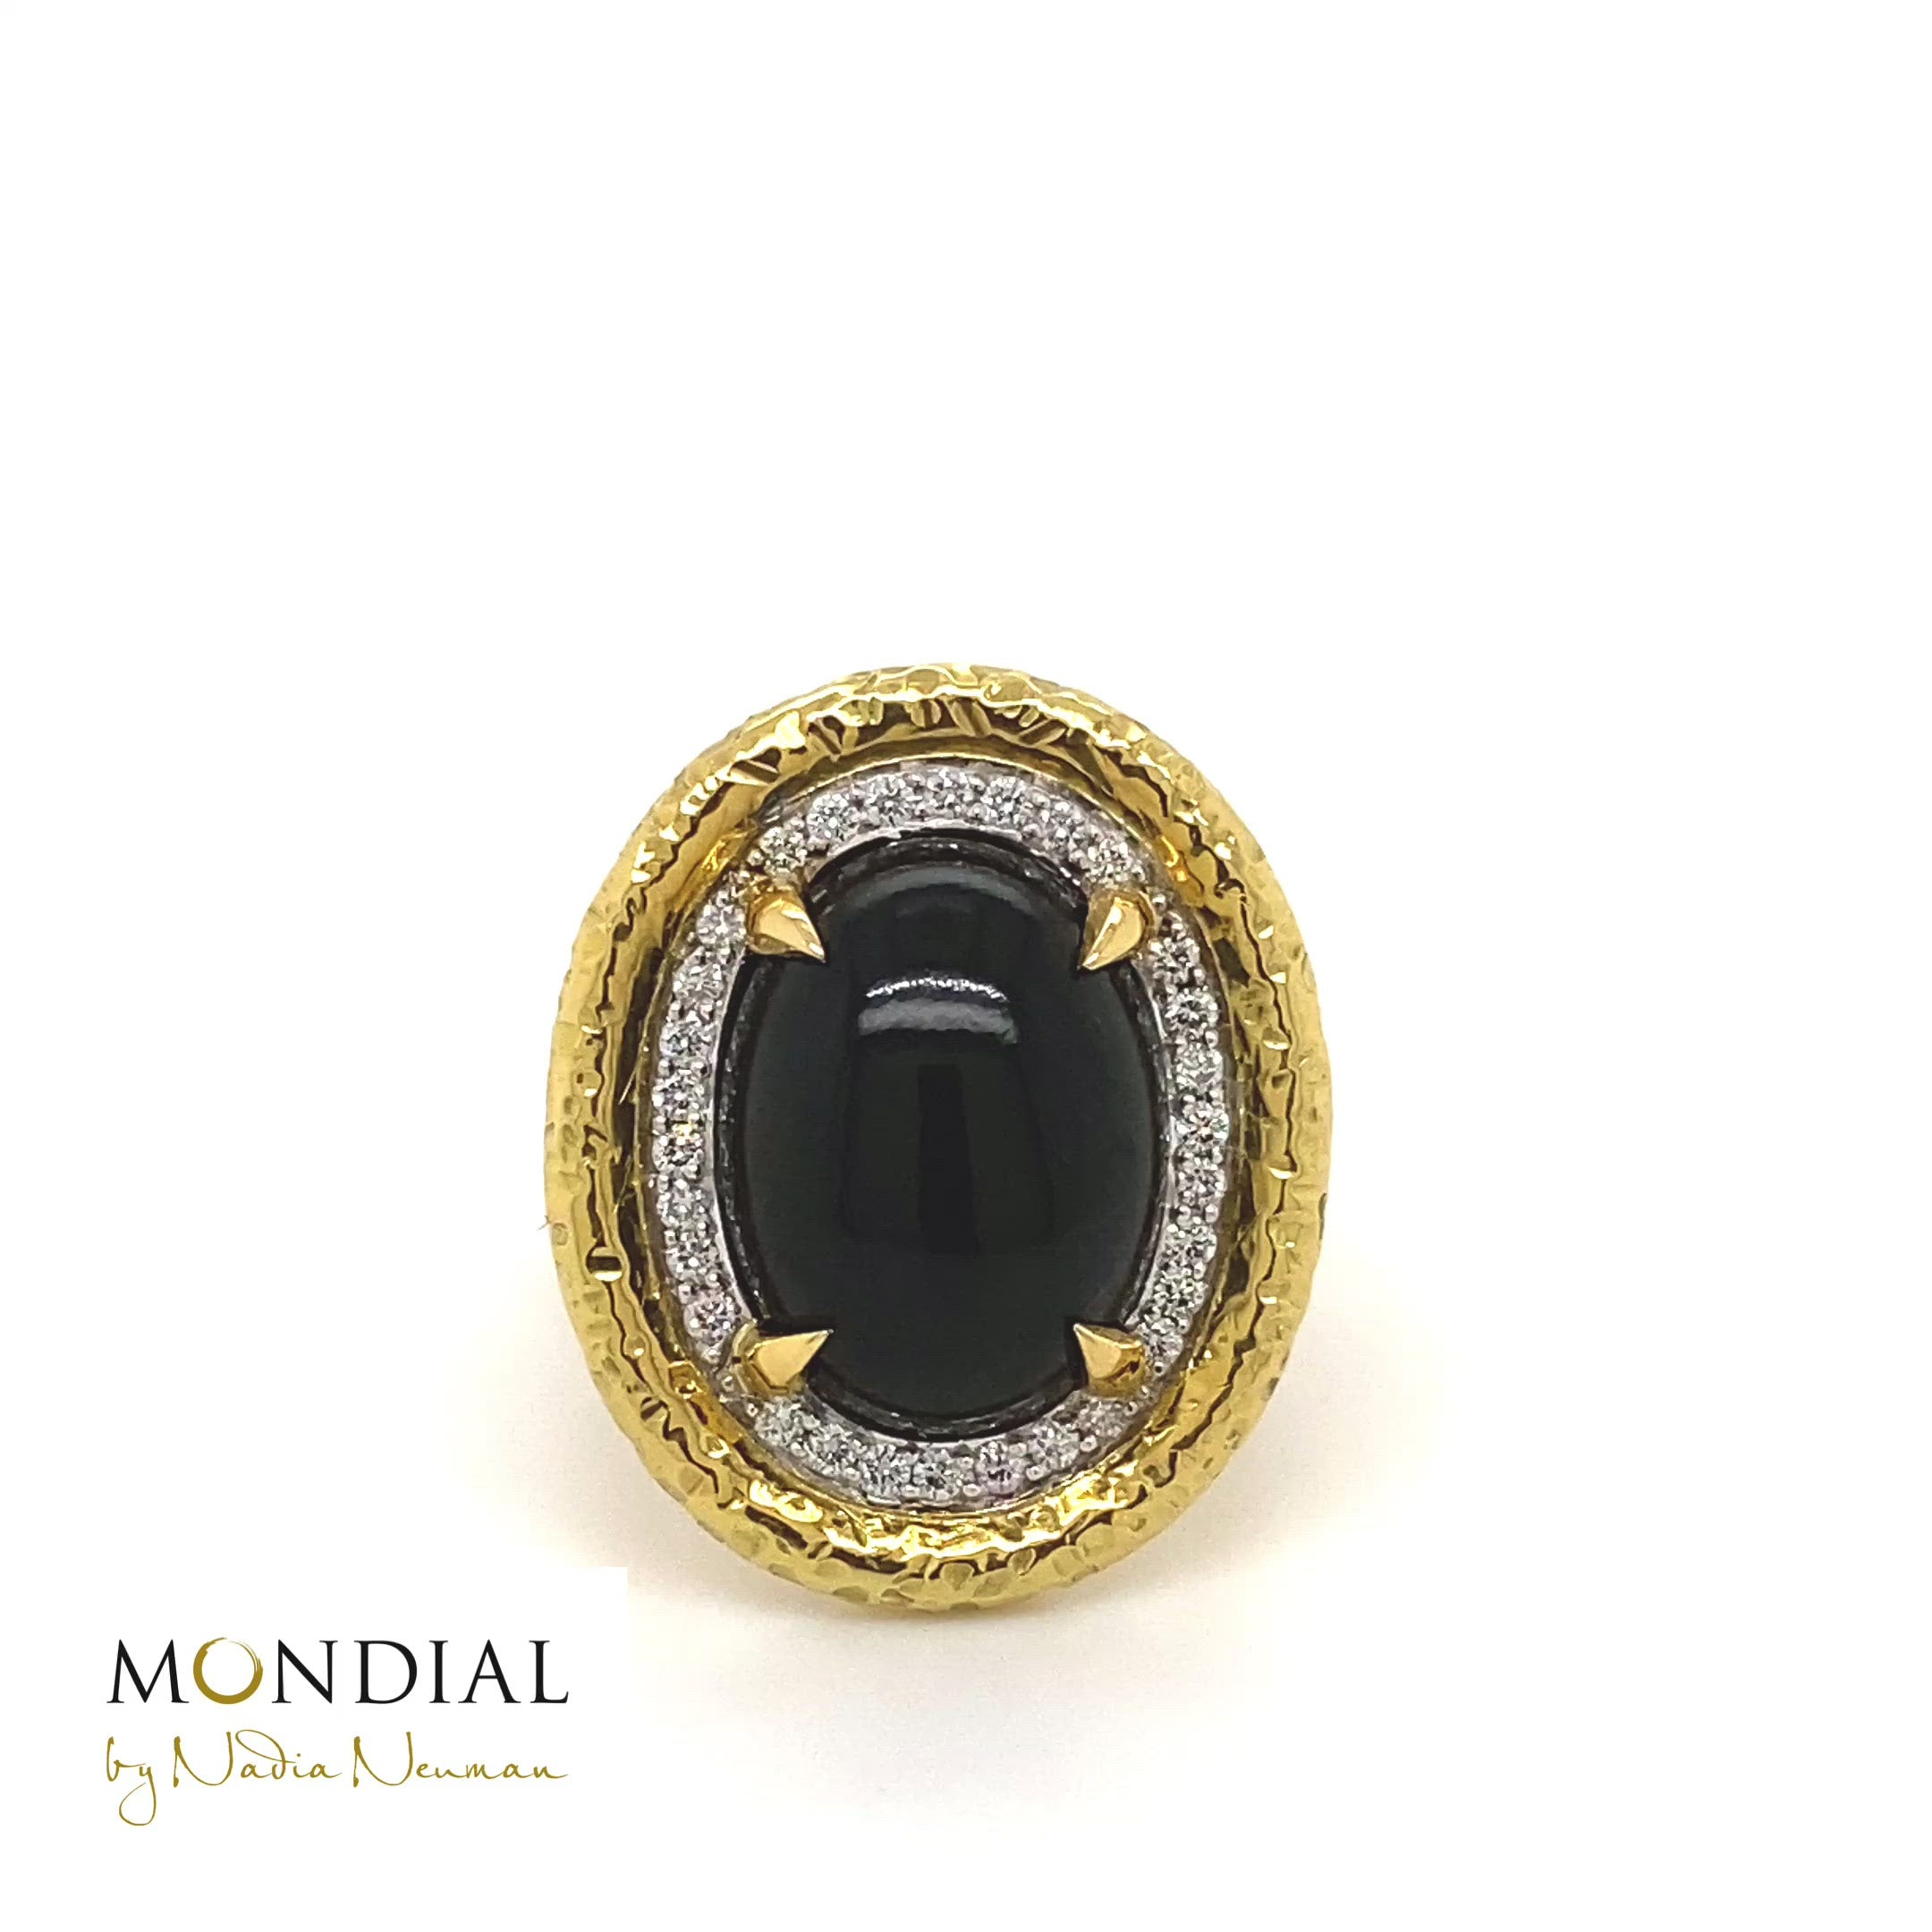 Australian Cabochon Black Jade & Diamonds in Beaten Gold Design